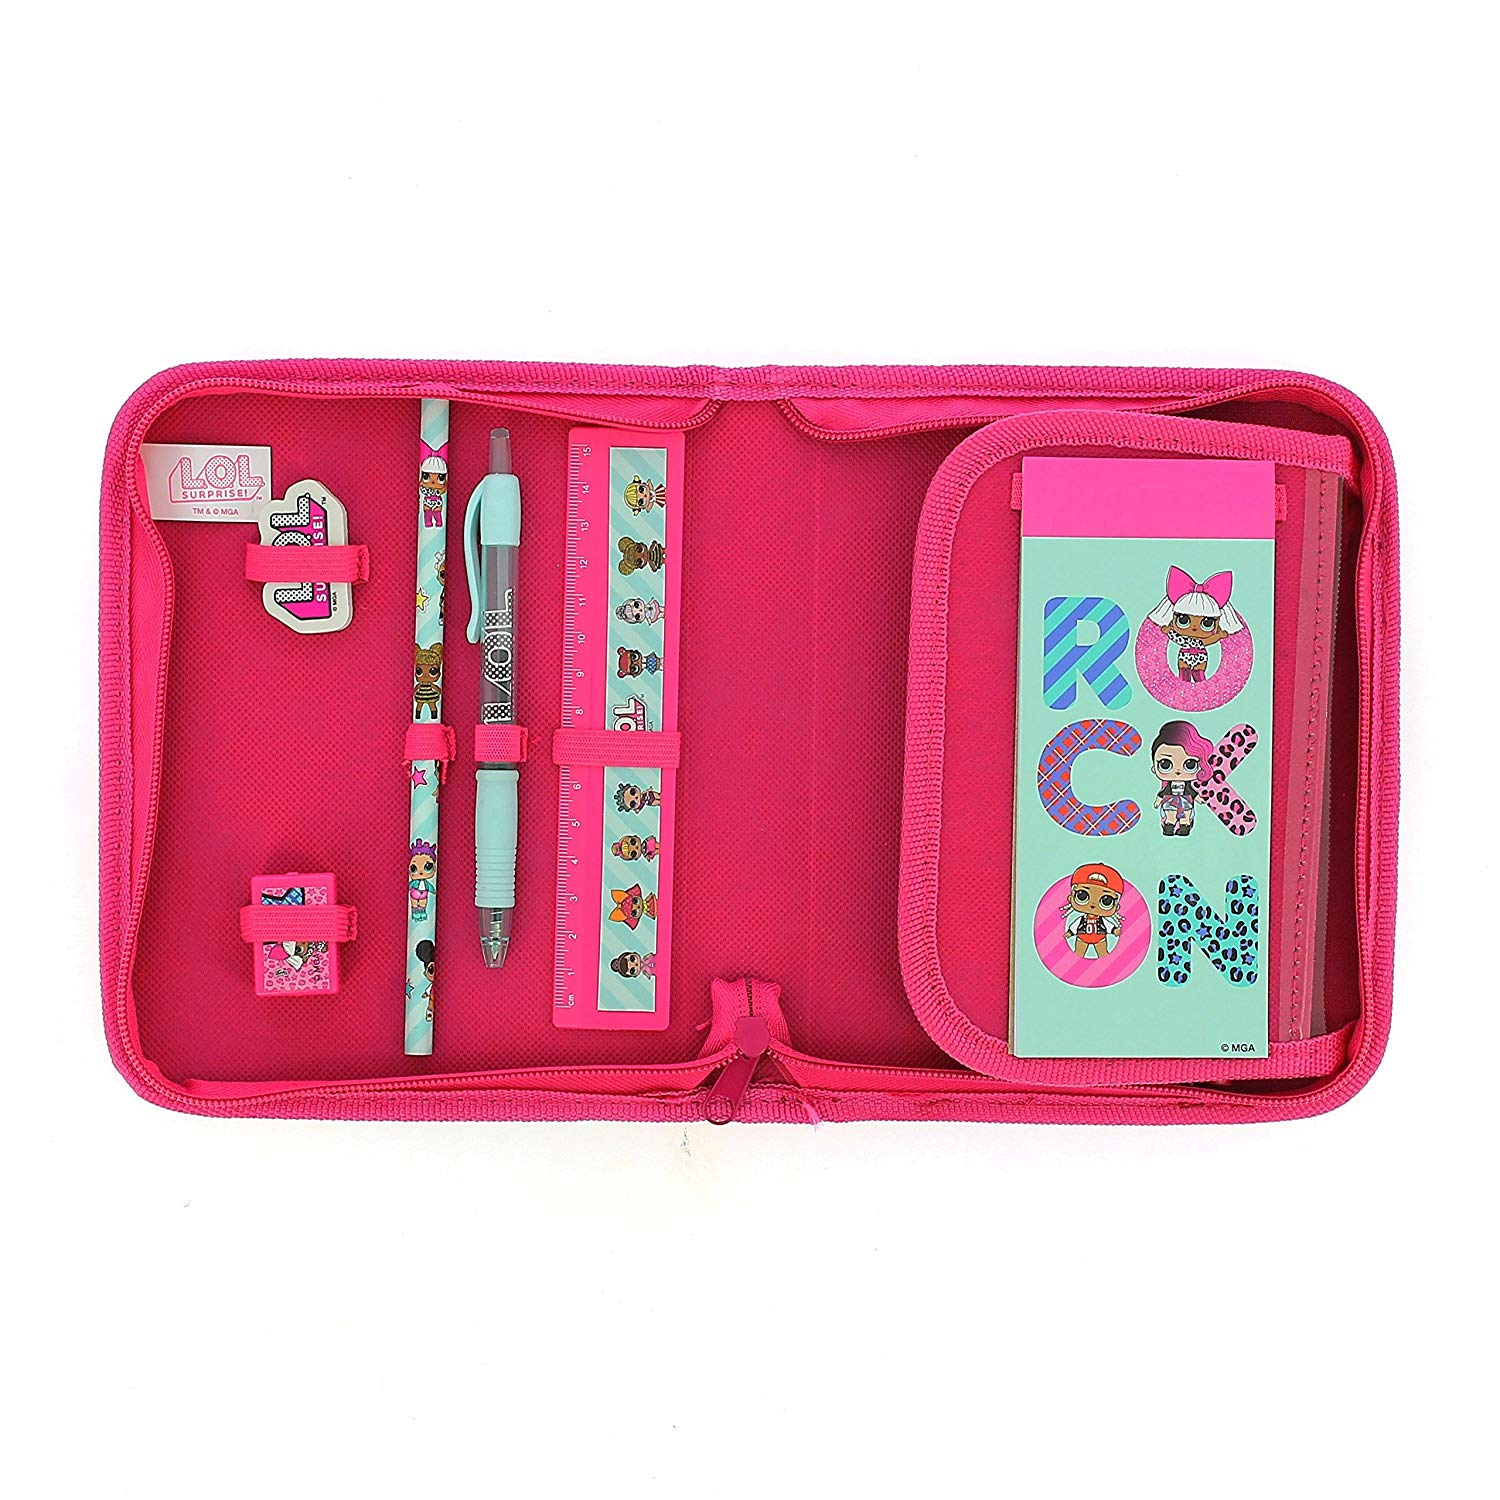 Lol Surprise Filled Pencil Case Stationery